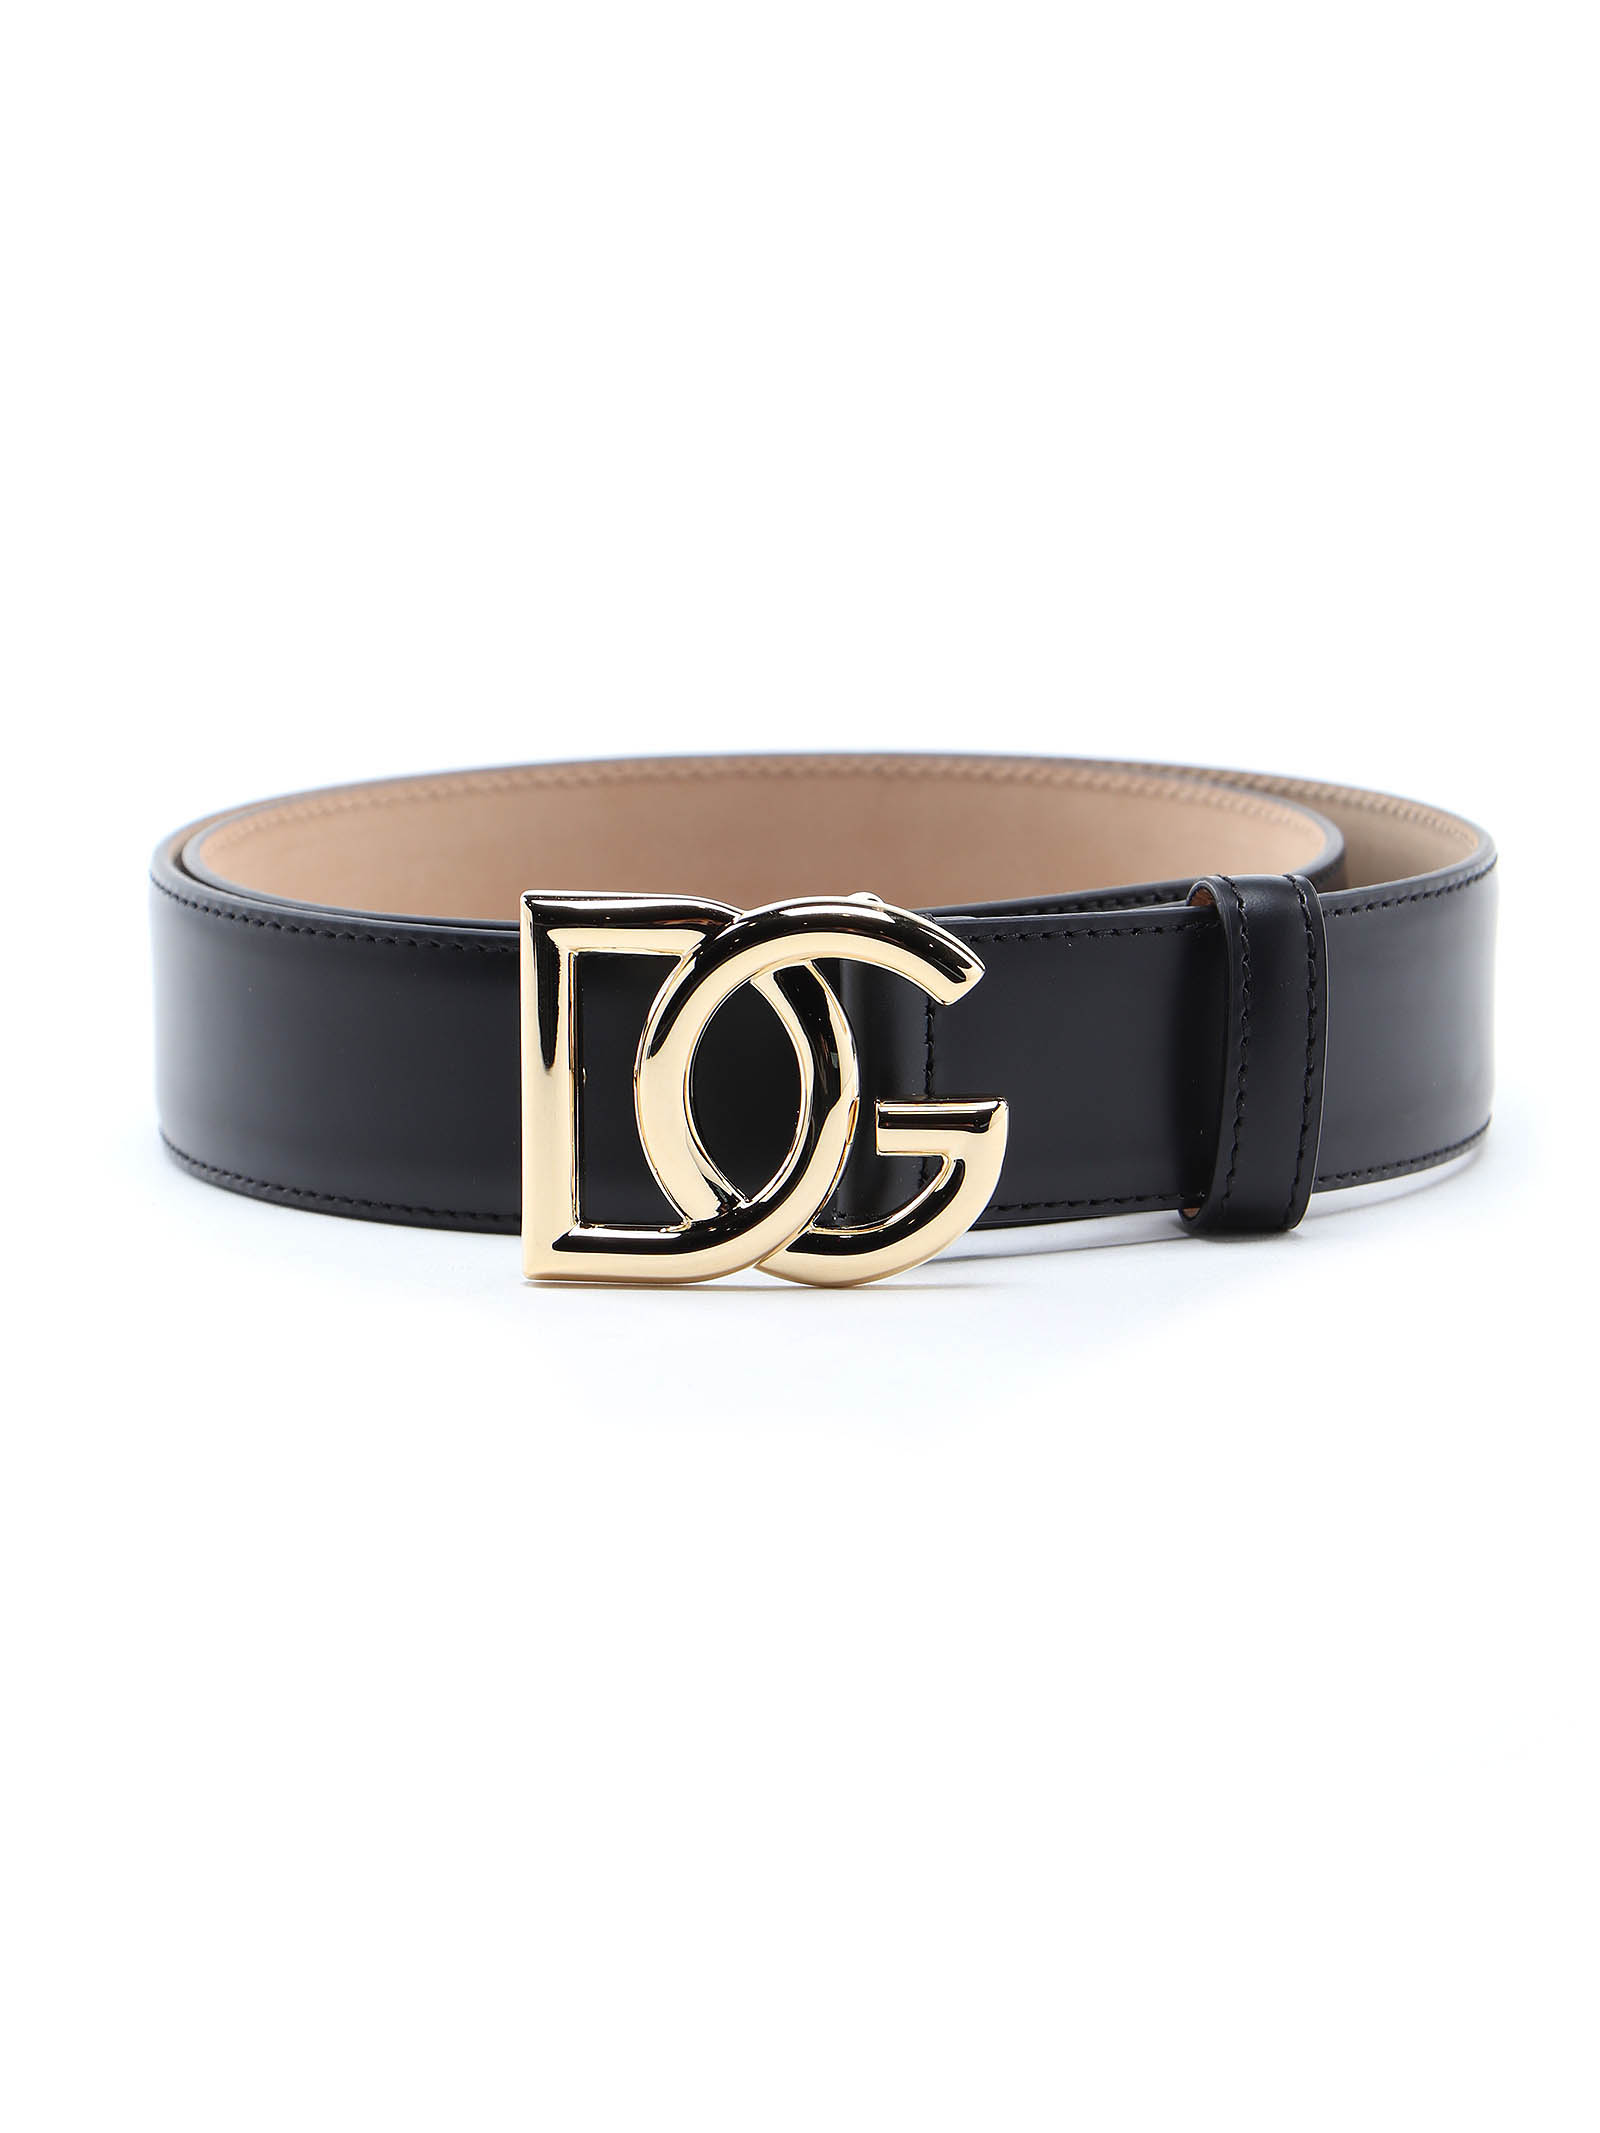 Picture of Dolce & Gabbana | Belt